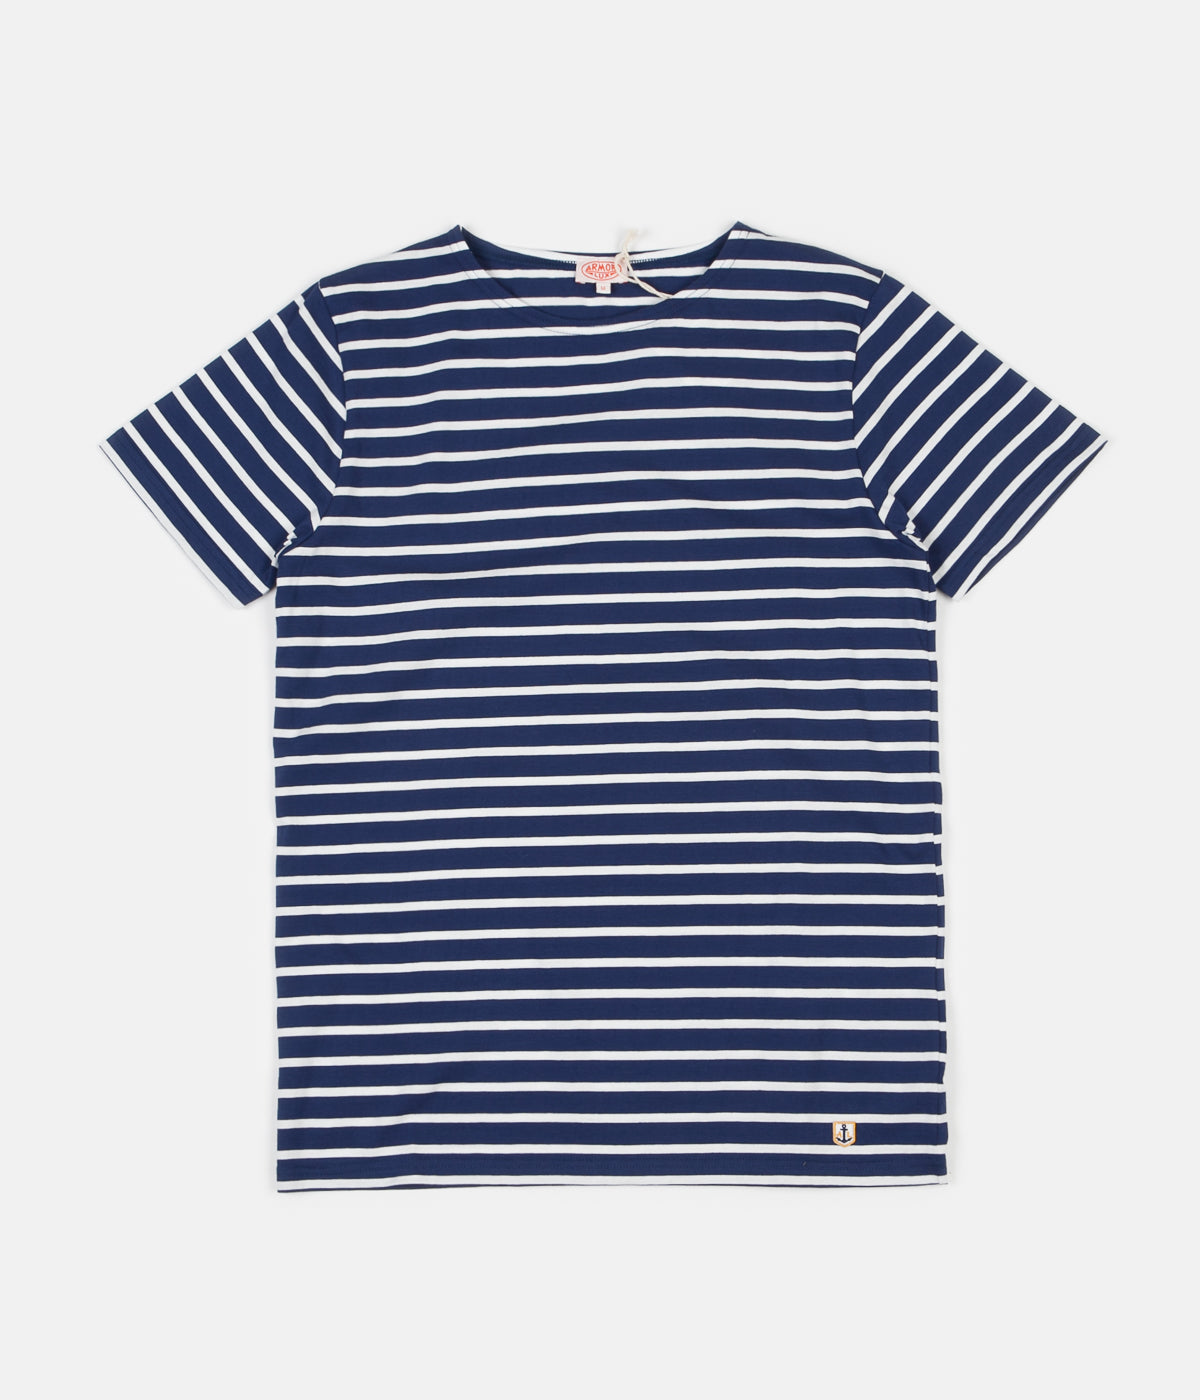 Armor Lux Breton Sailor Striped T-Shirt - Polo / Milk